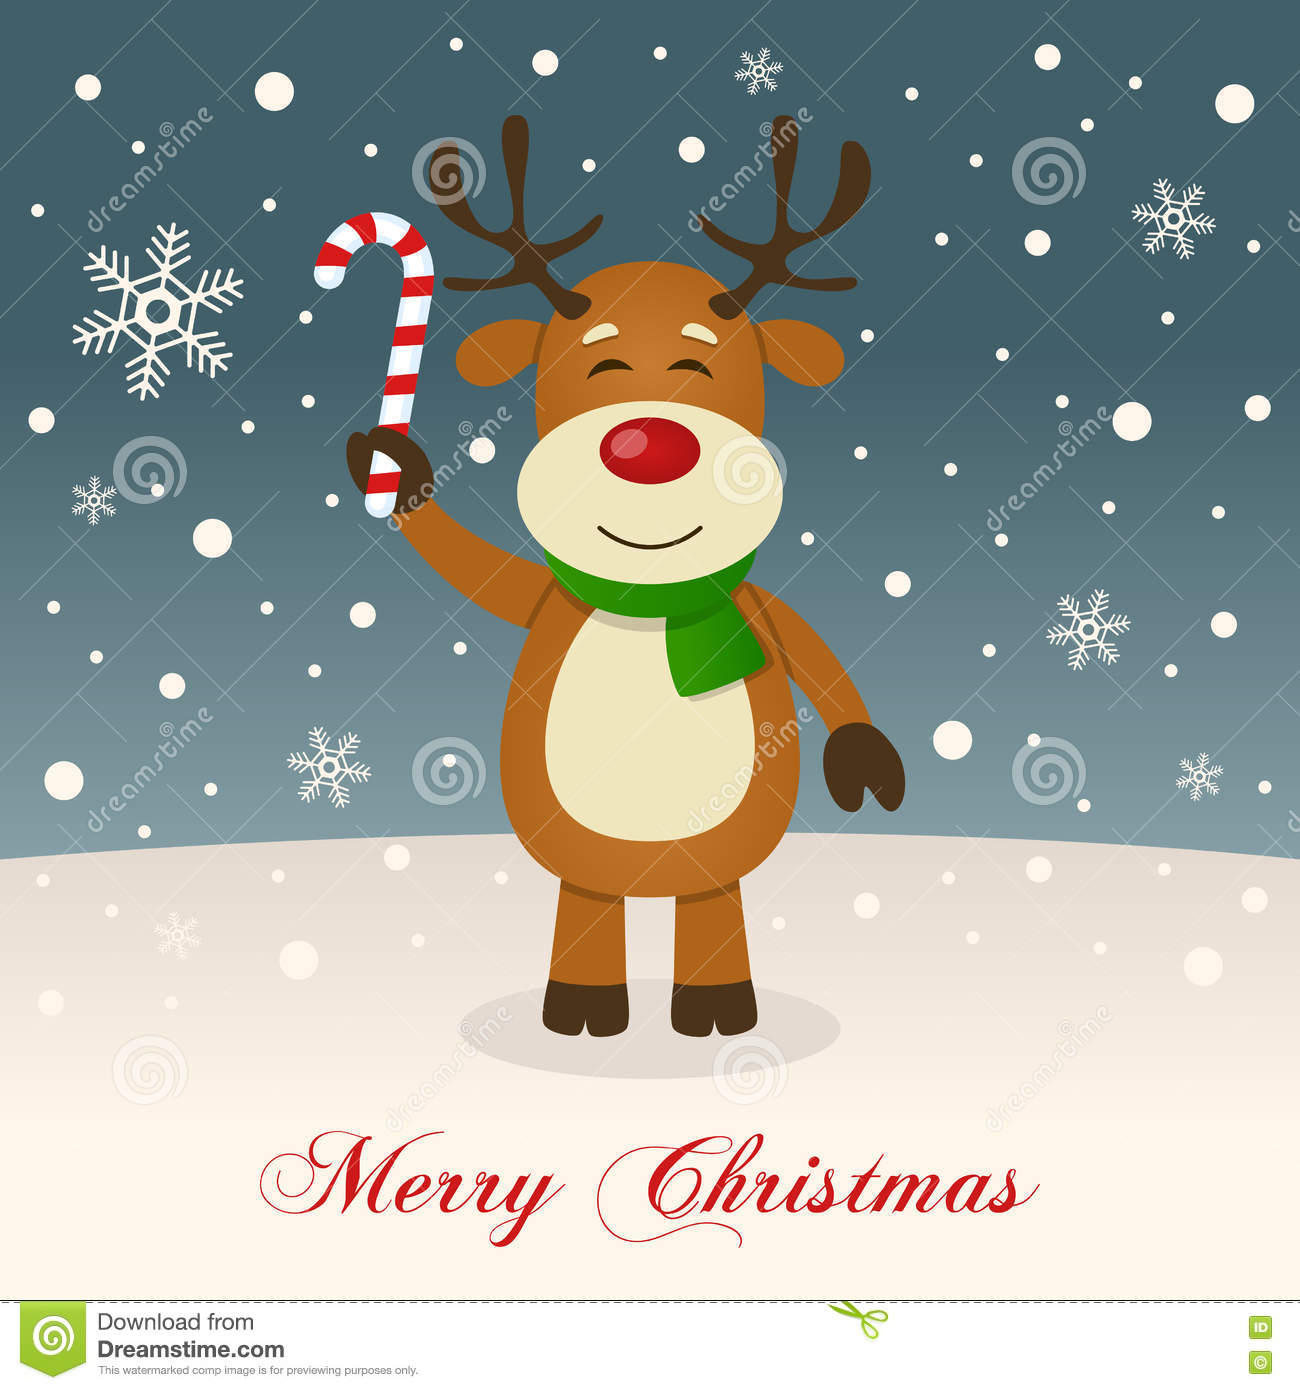 A Cute Reindeer Wishing A Merry Christmas Stock Vector